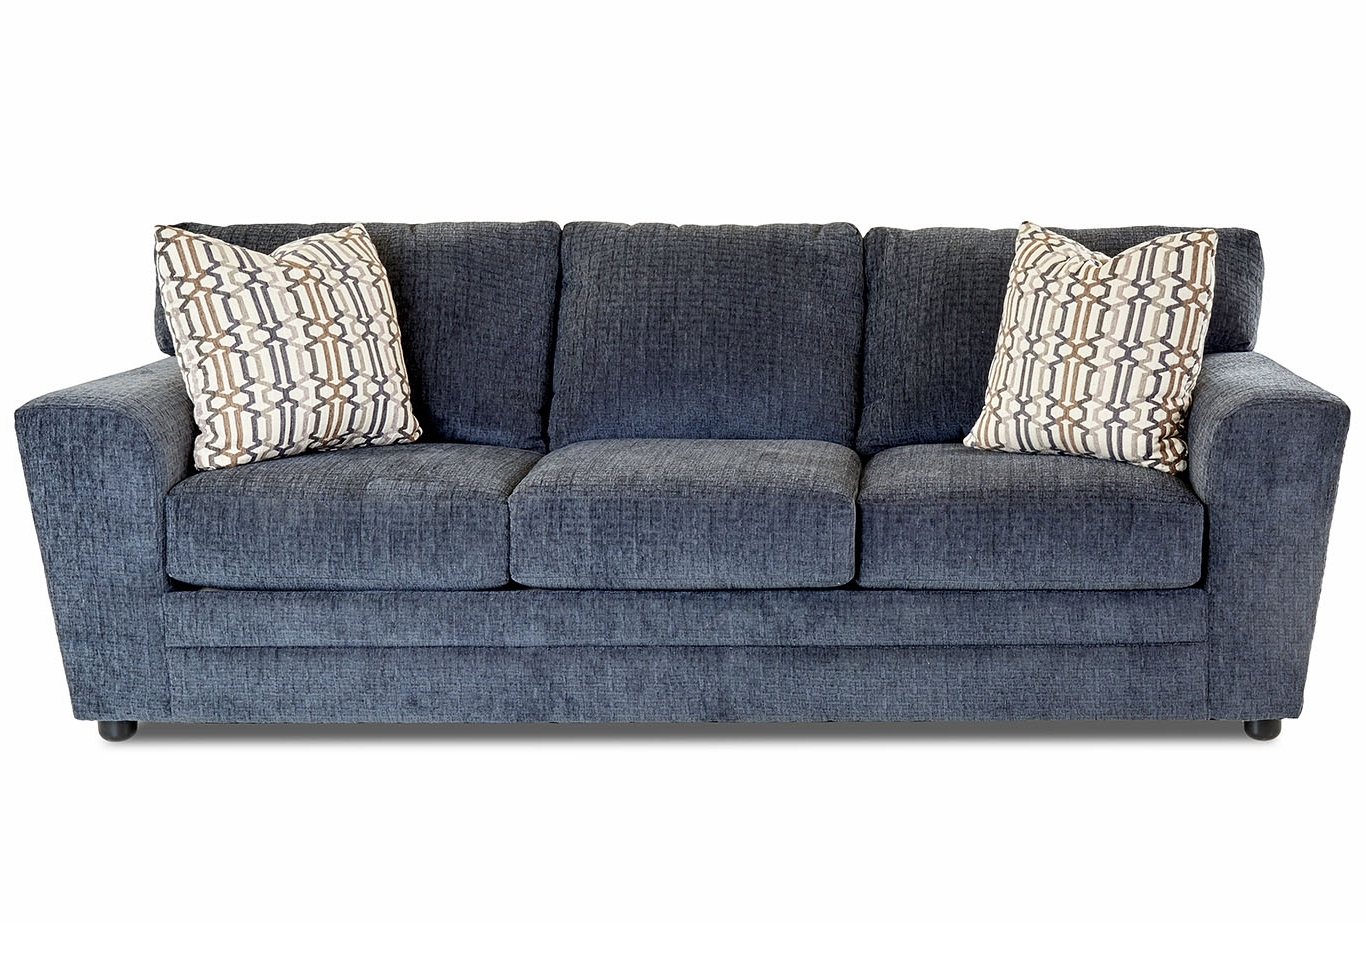 Most Recently Released Ashburn Cocktail Tables Within Signature Furniture – Nj Ashburn Fabric Sleeper Sofa (View 14 of 20)